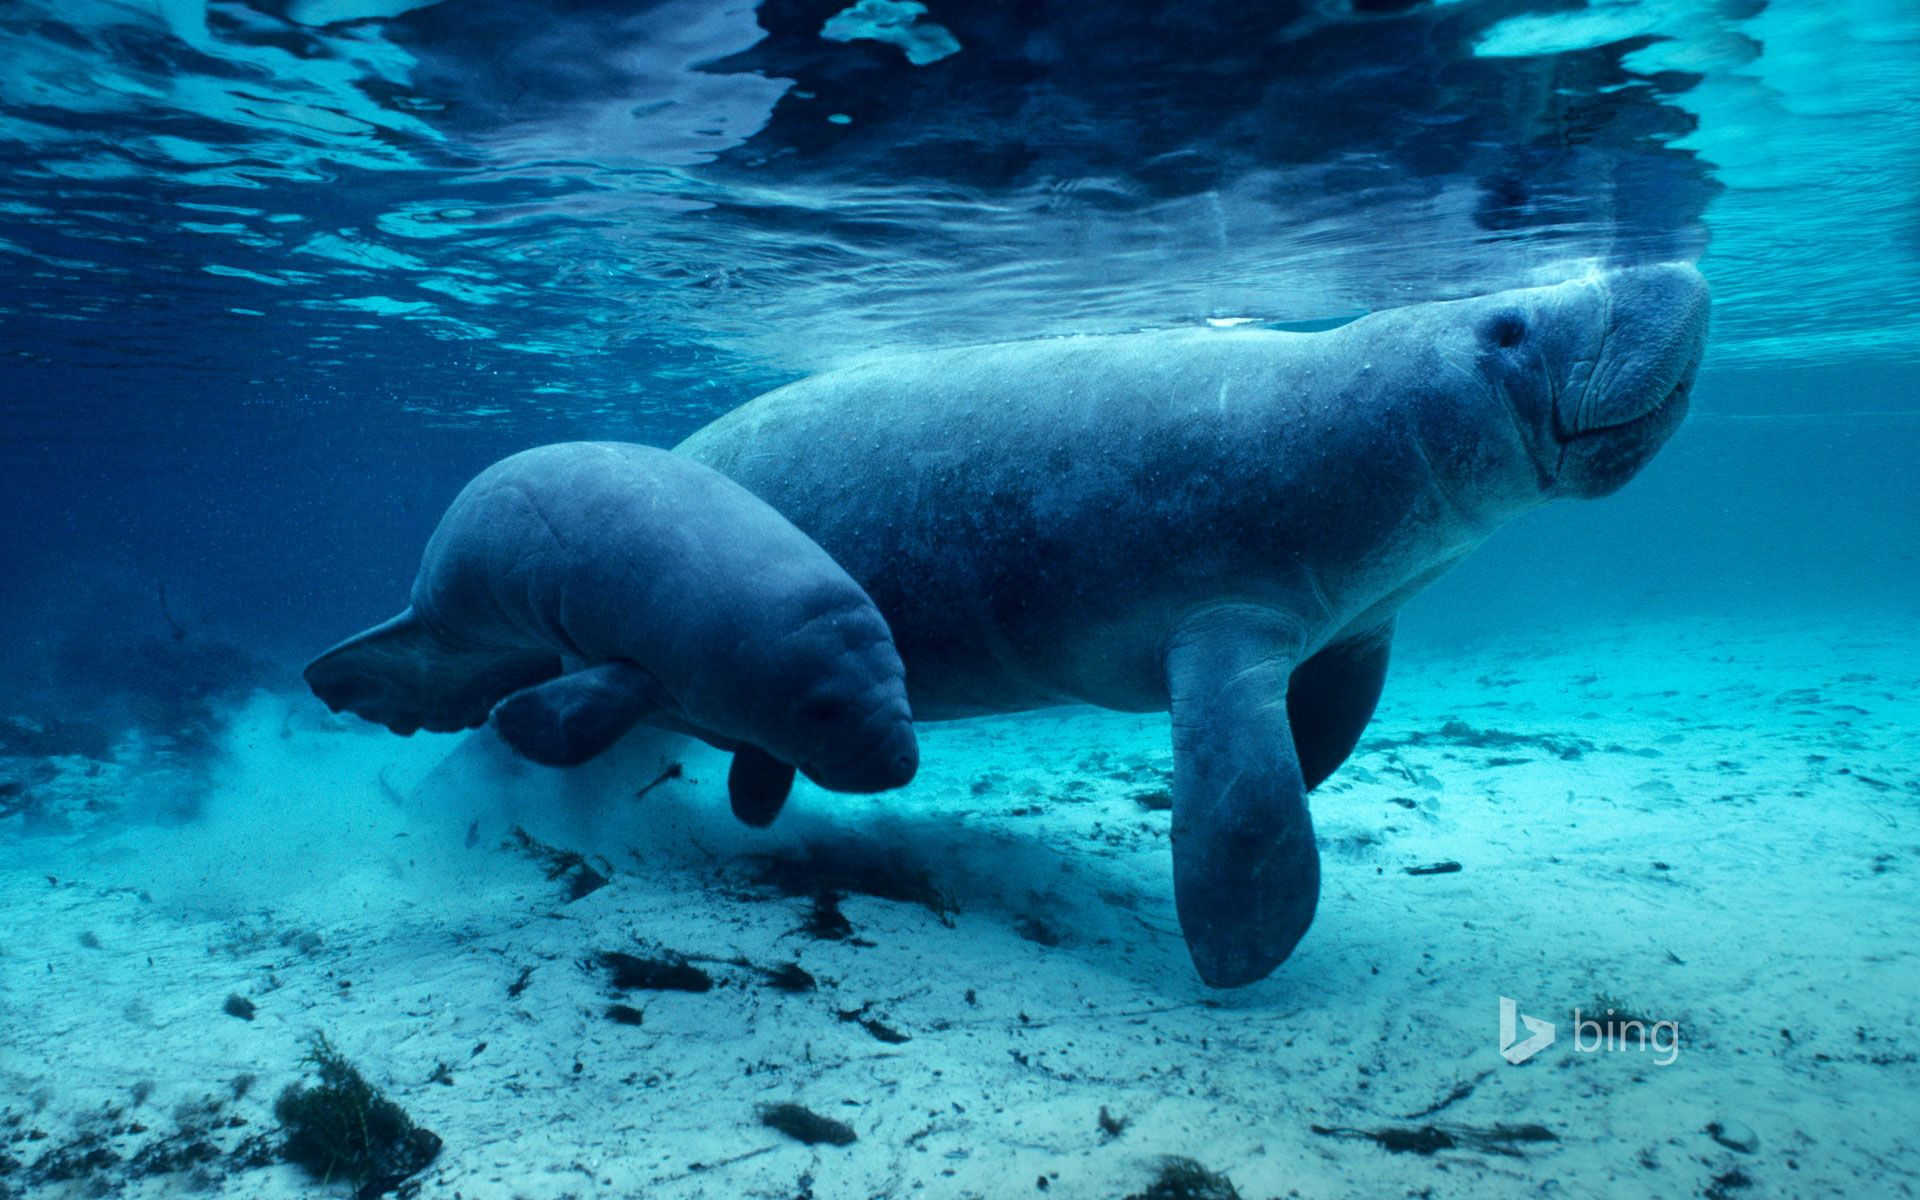 Here in Florida's Crystal River, West Indian manatees rule